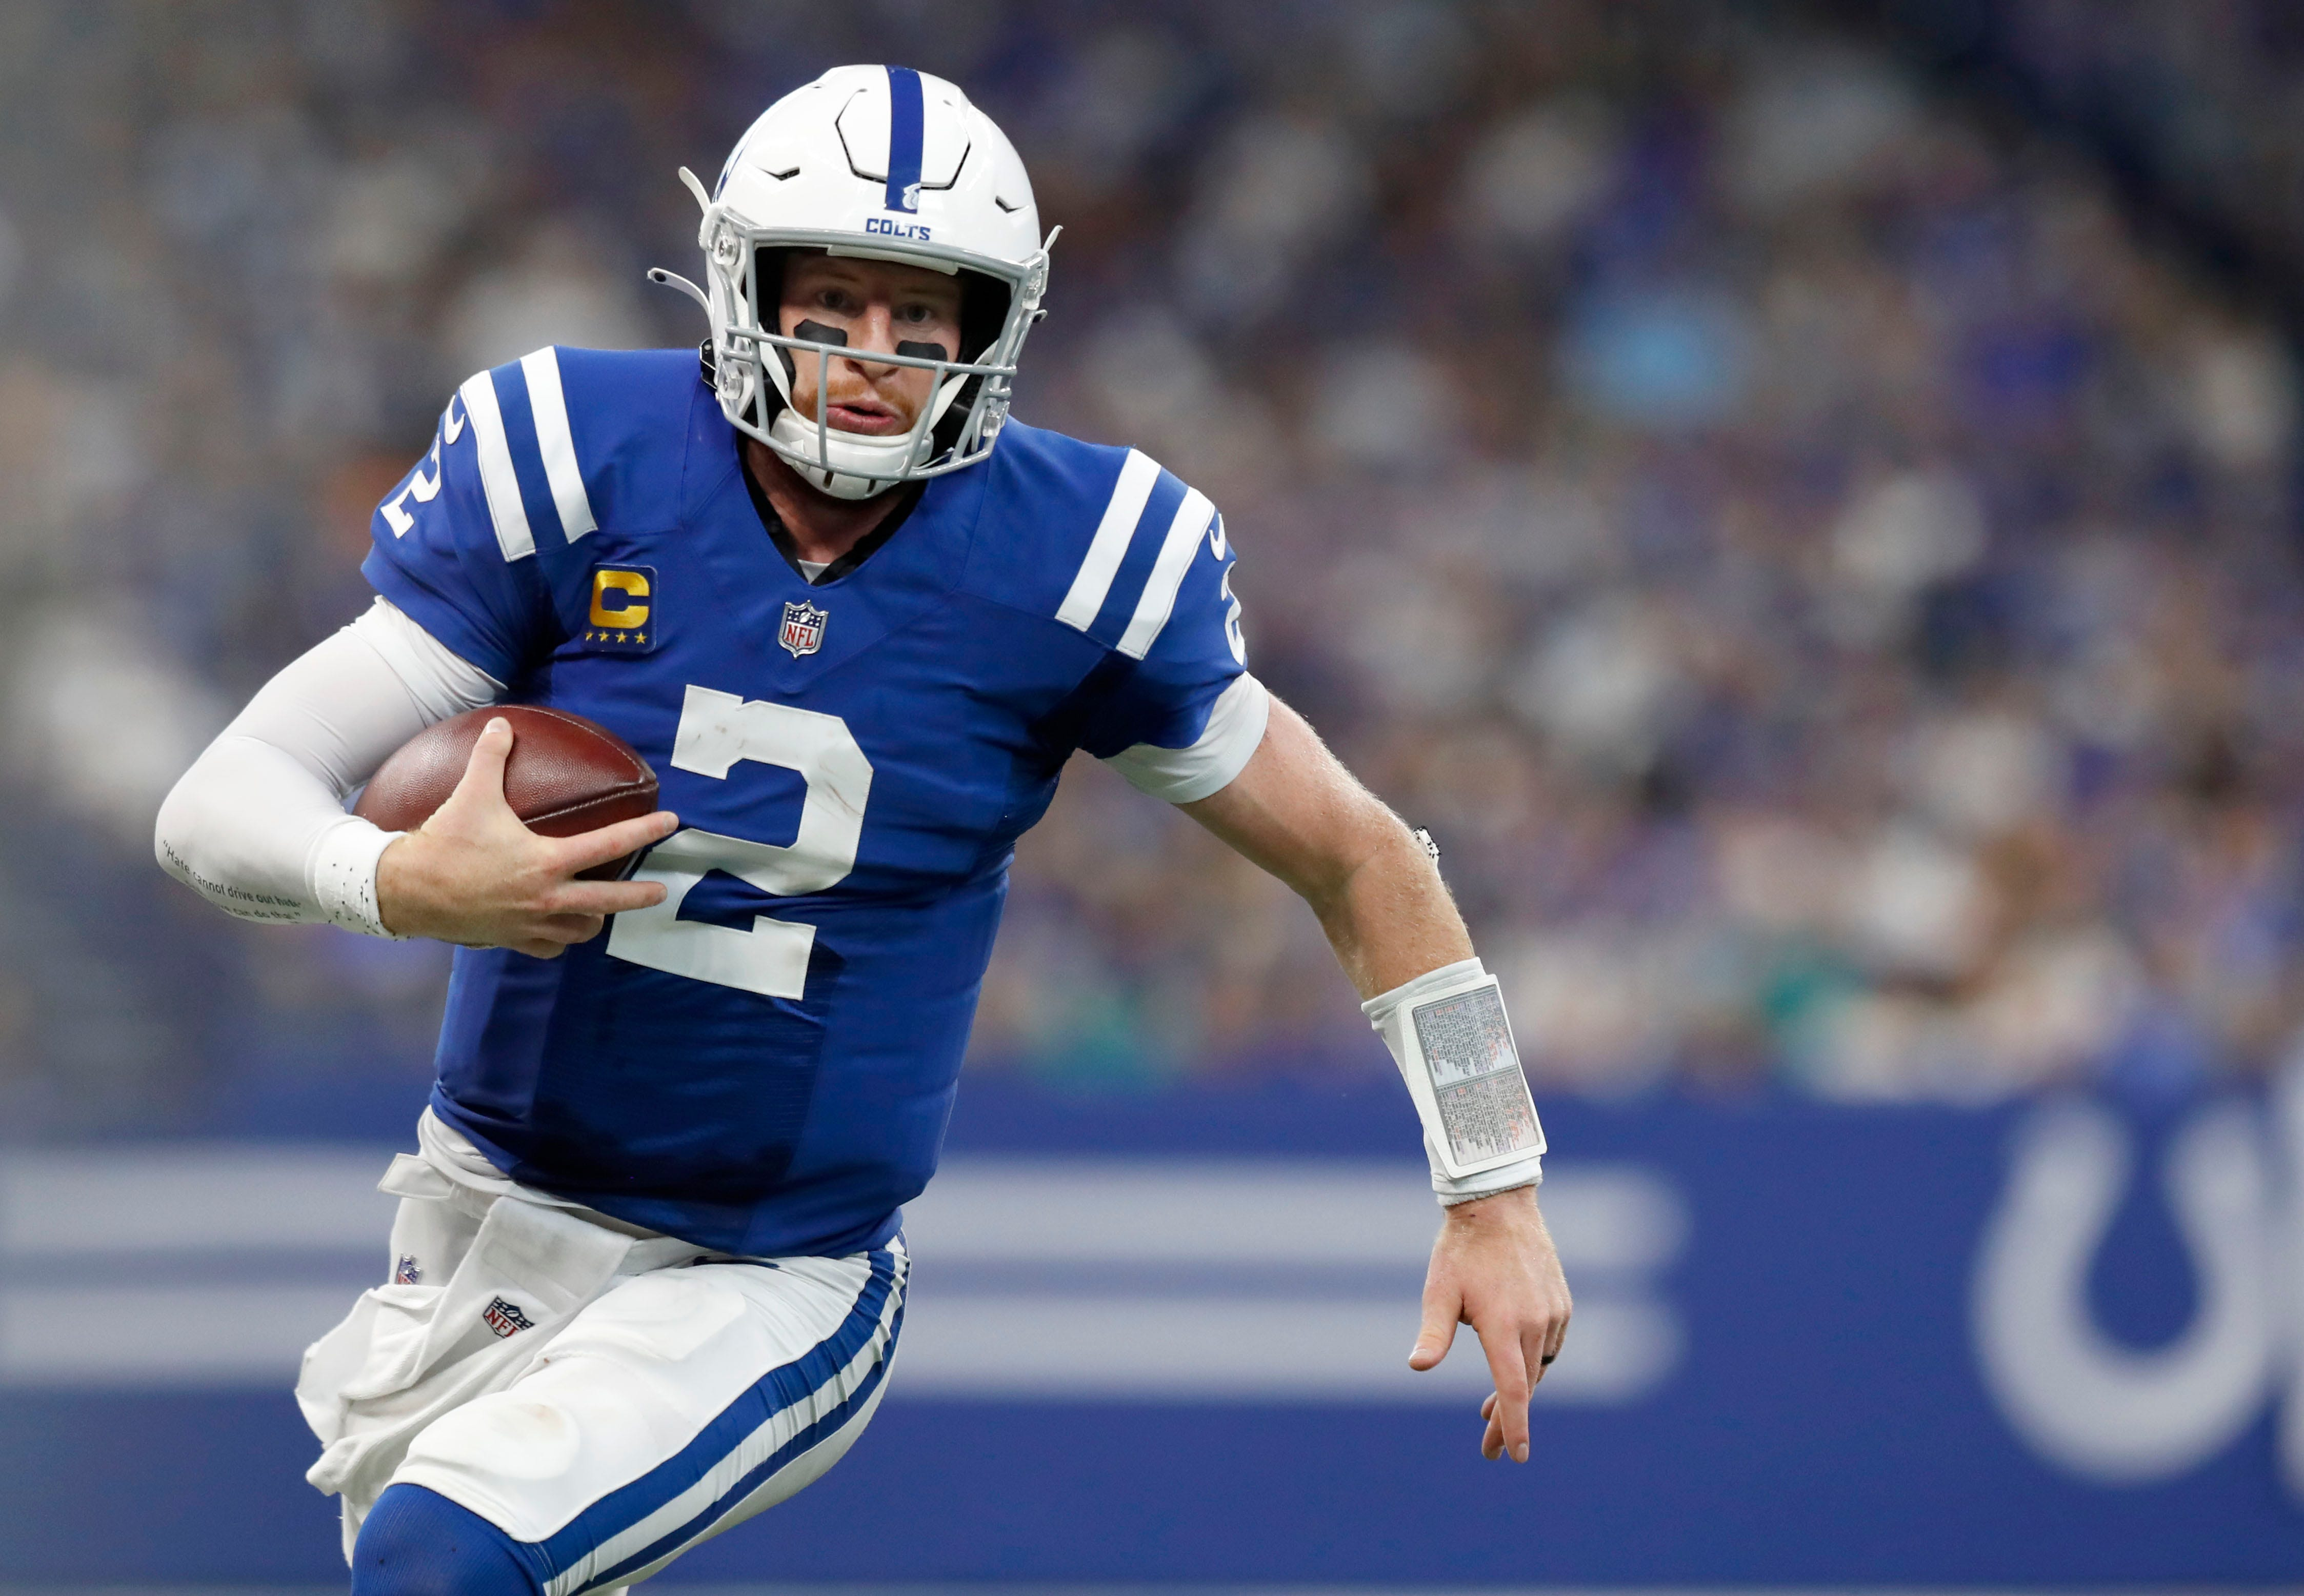 Colts QB Carson Wentz suffered sprains in both ankles, status vs. Titans unclear